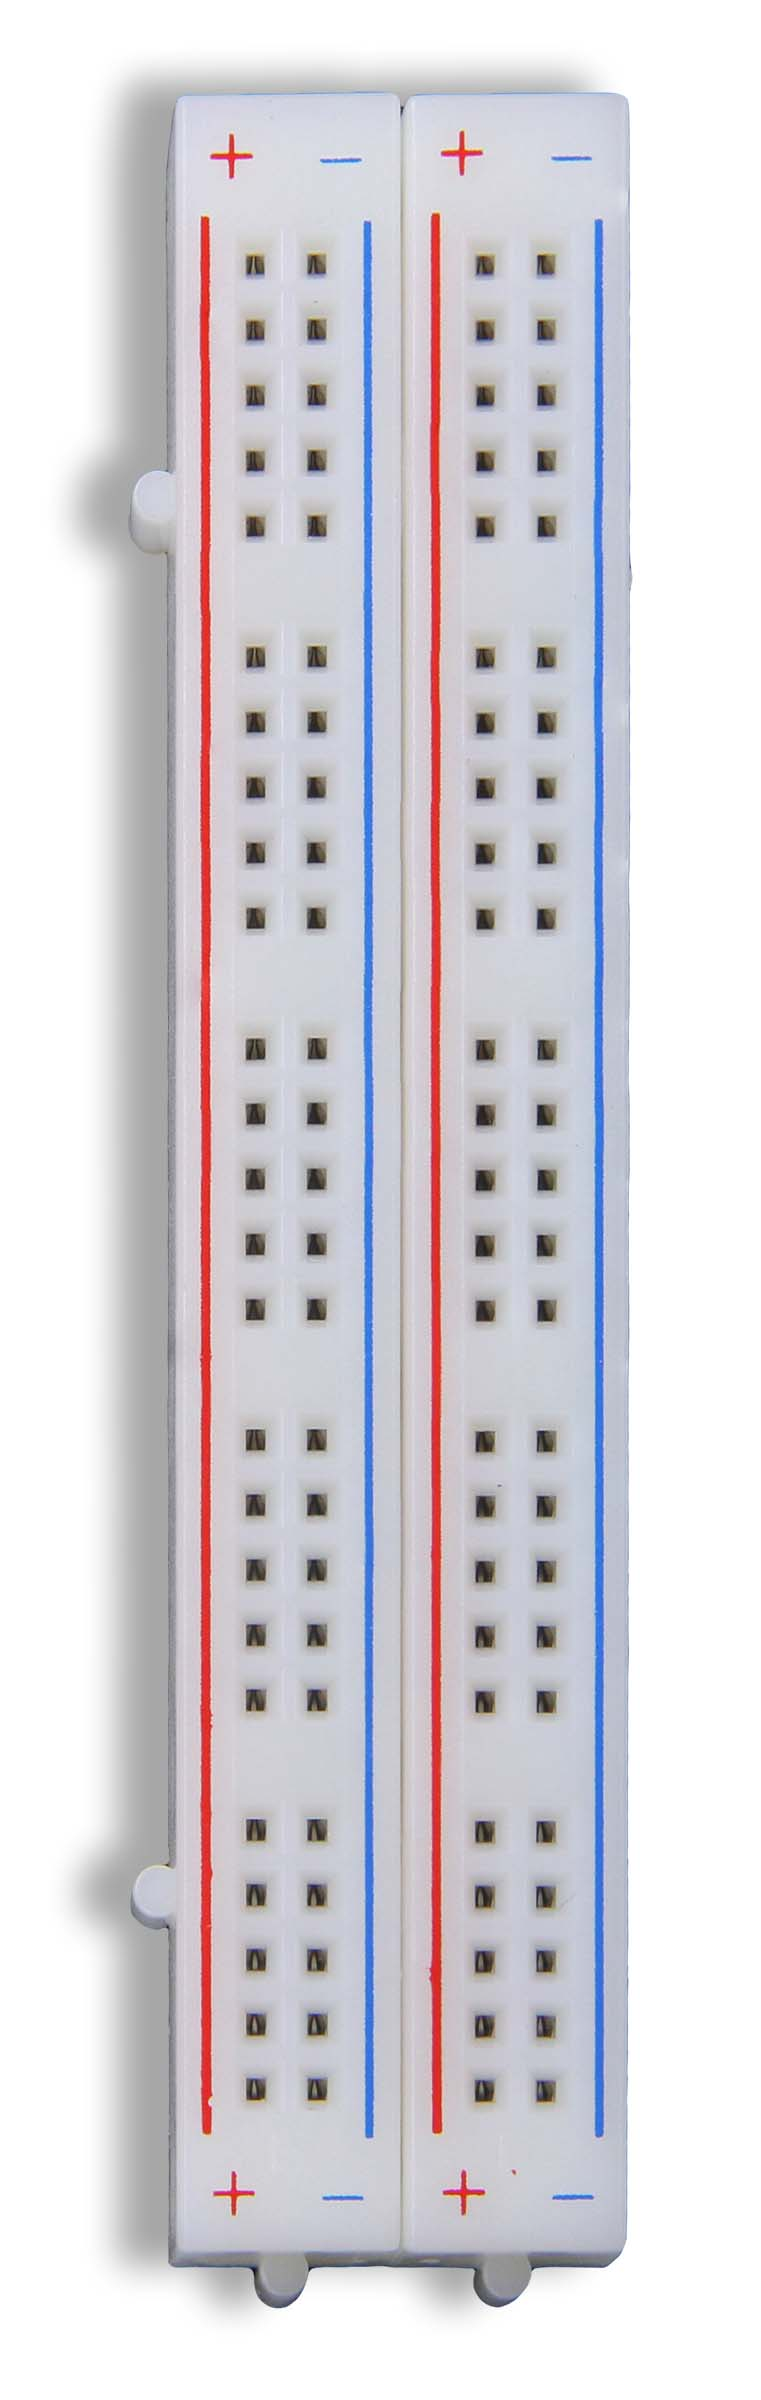 GS-050: Bus Strip, 50 Tie-points, 2-pack